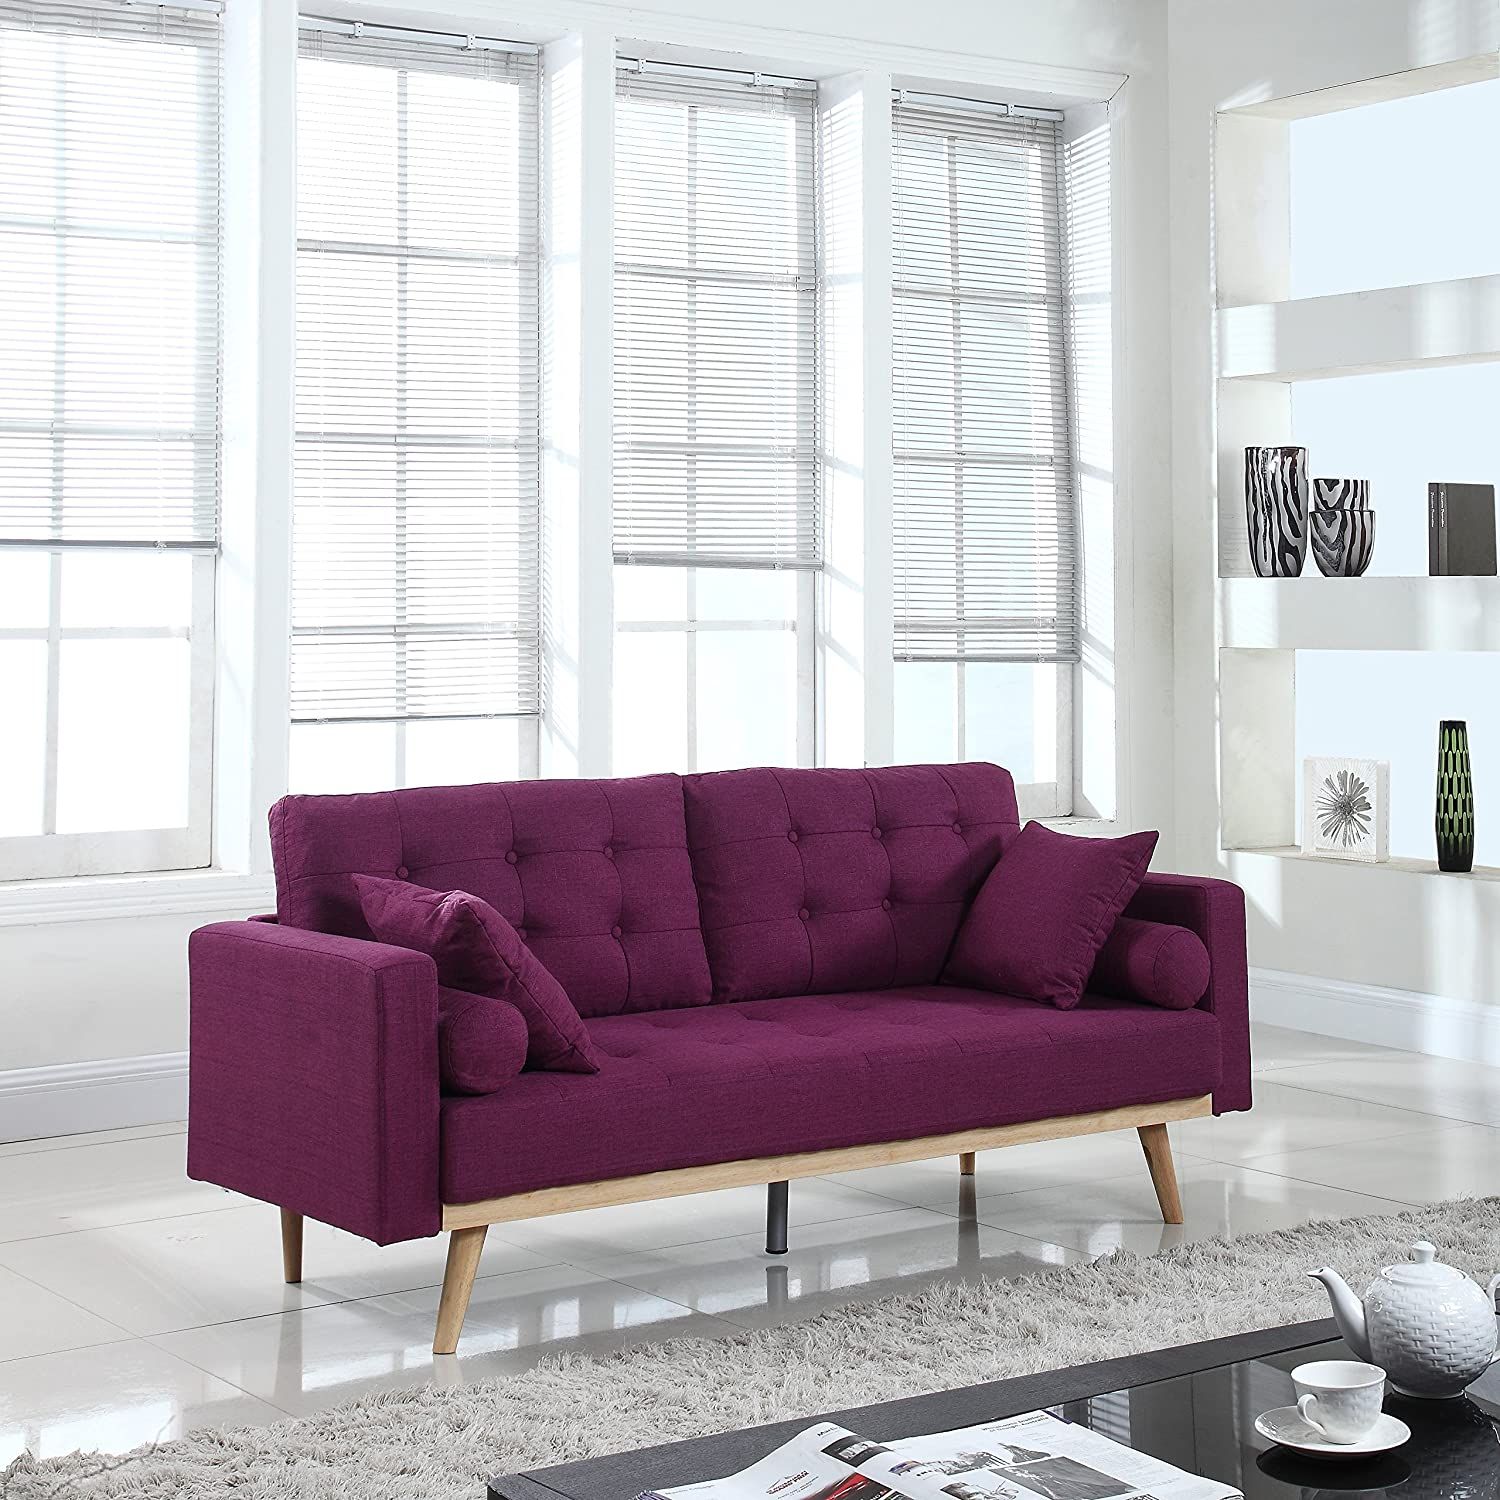 Mid-Century Modern Tufted Linen Fabric Sofa (Purple)